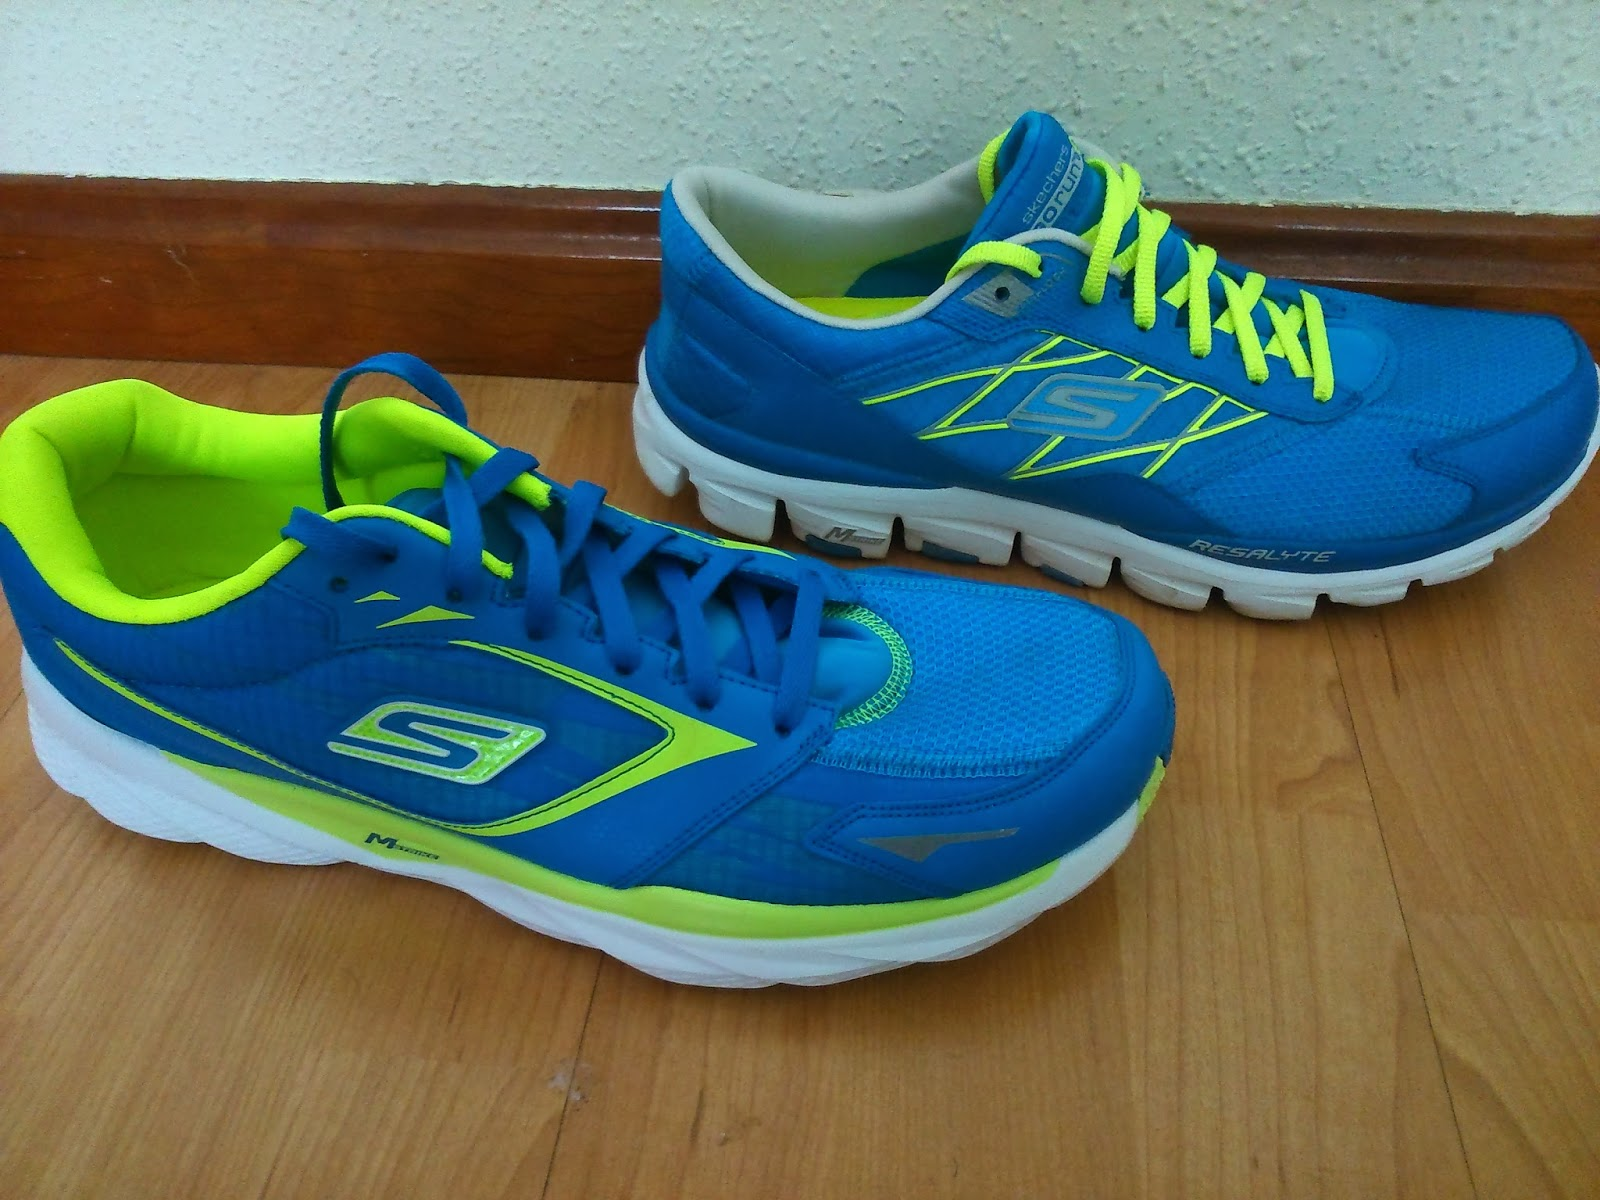 skechers gorun ride 3 vs gorun riude 2